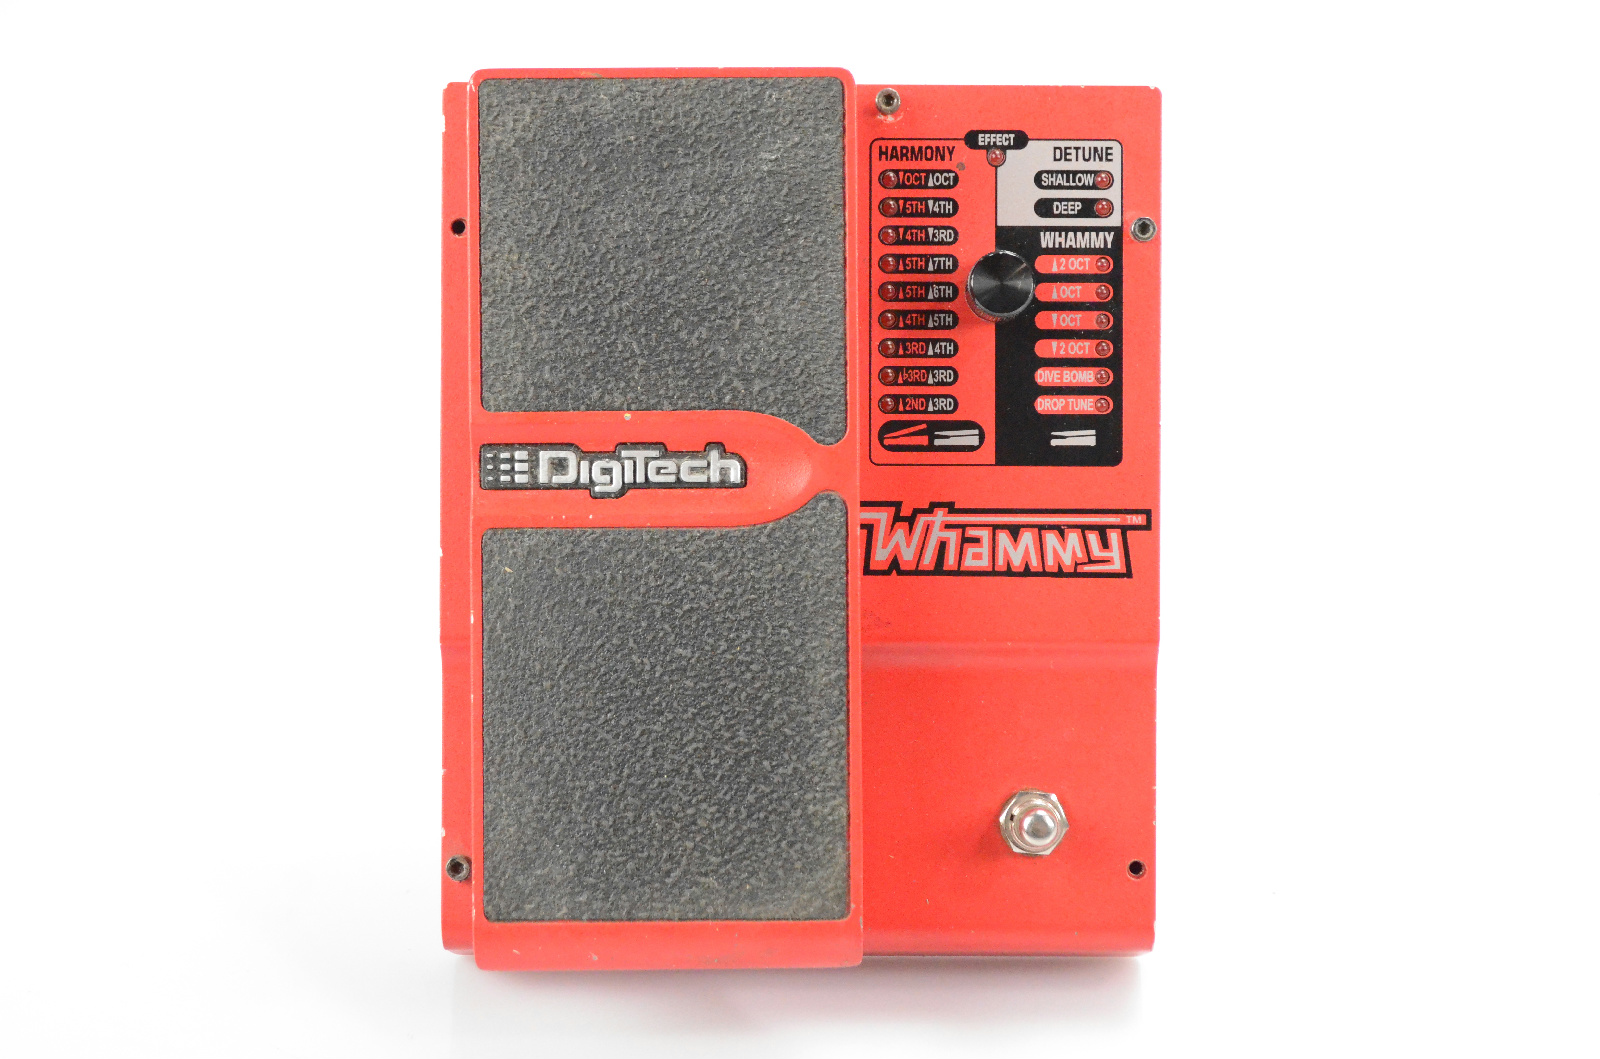 Digitech Whammy IV 4th Generation Guitar Effect Pedal Owned by Papa Roach #33314